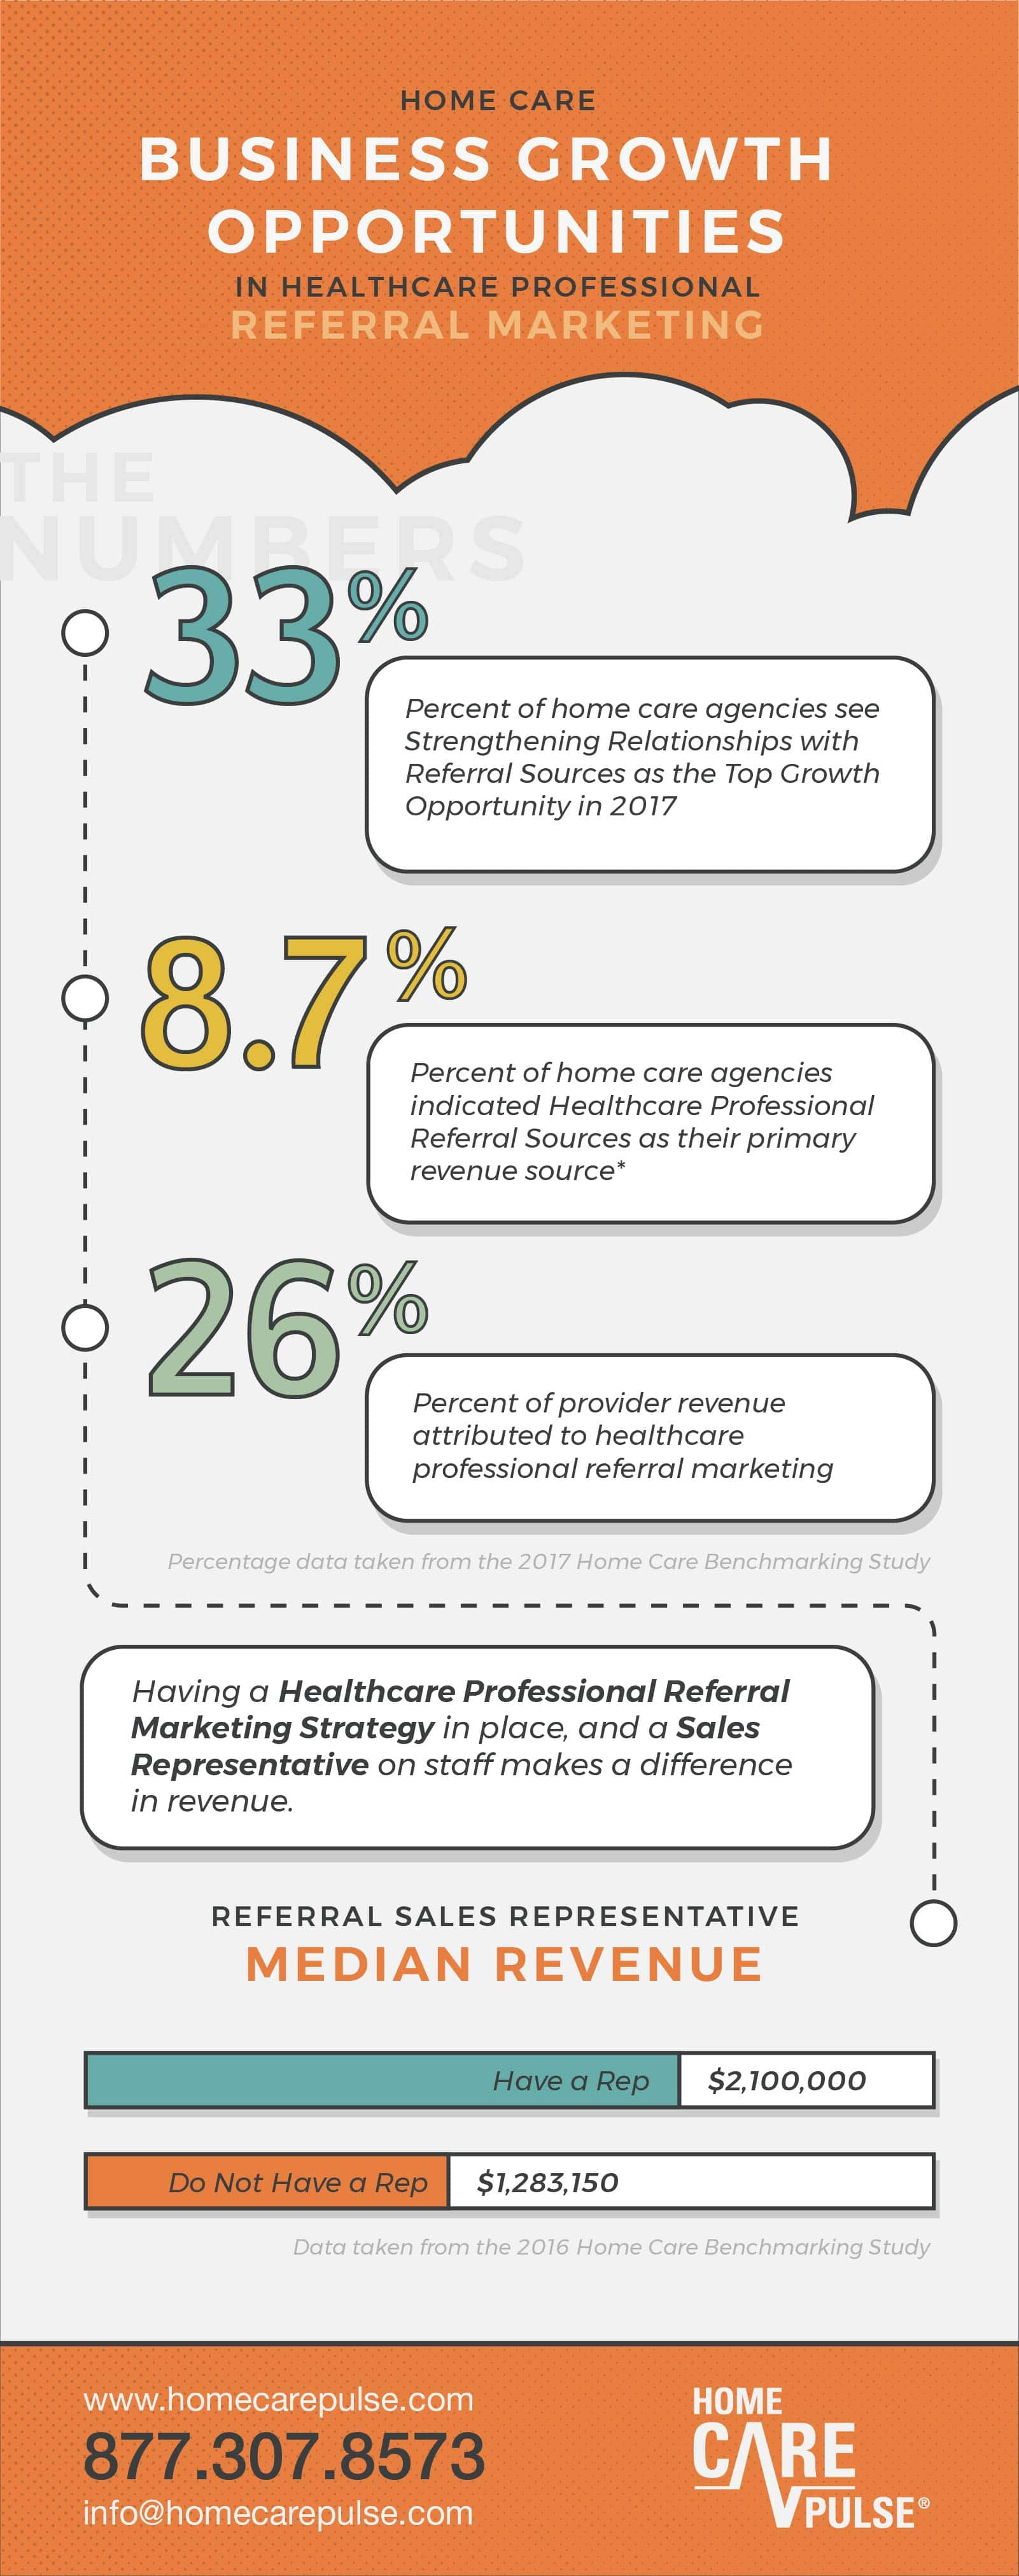 home care leads through healthcare professionals referral marketing